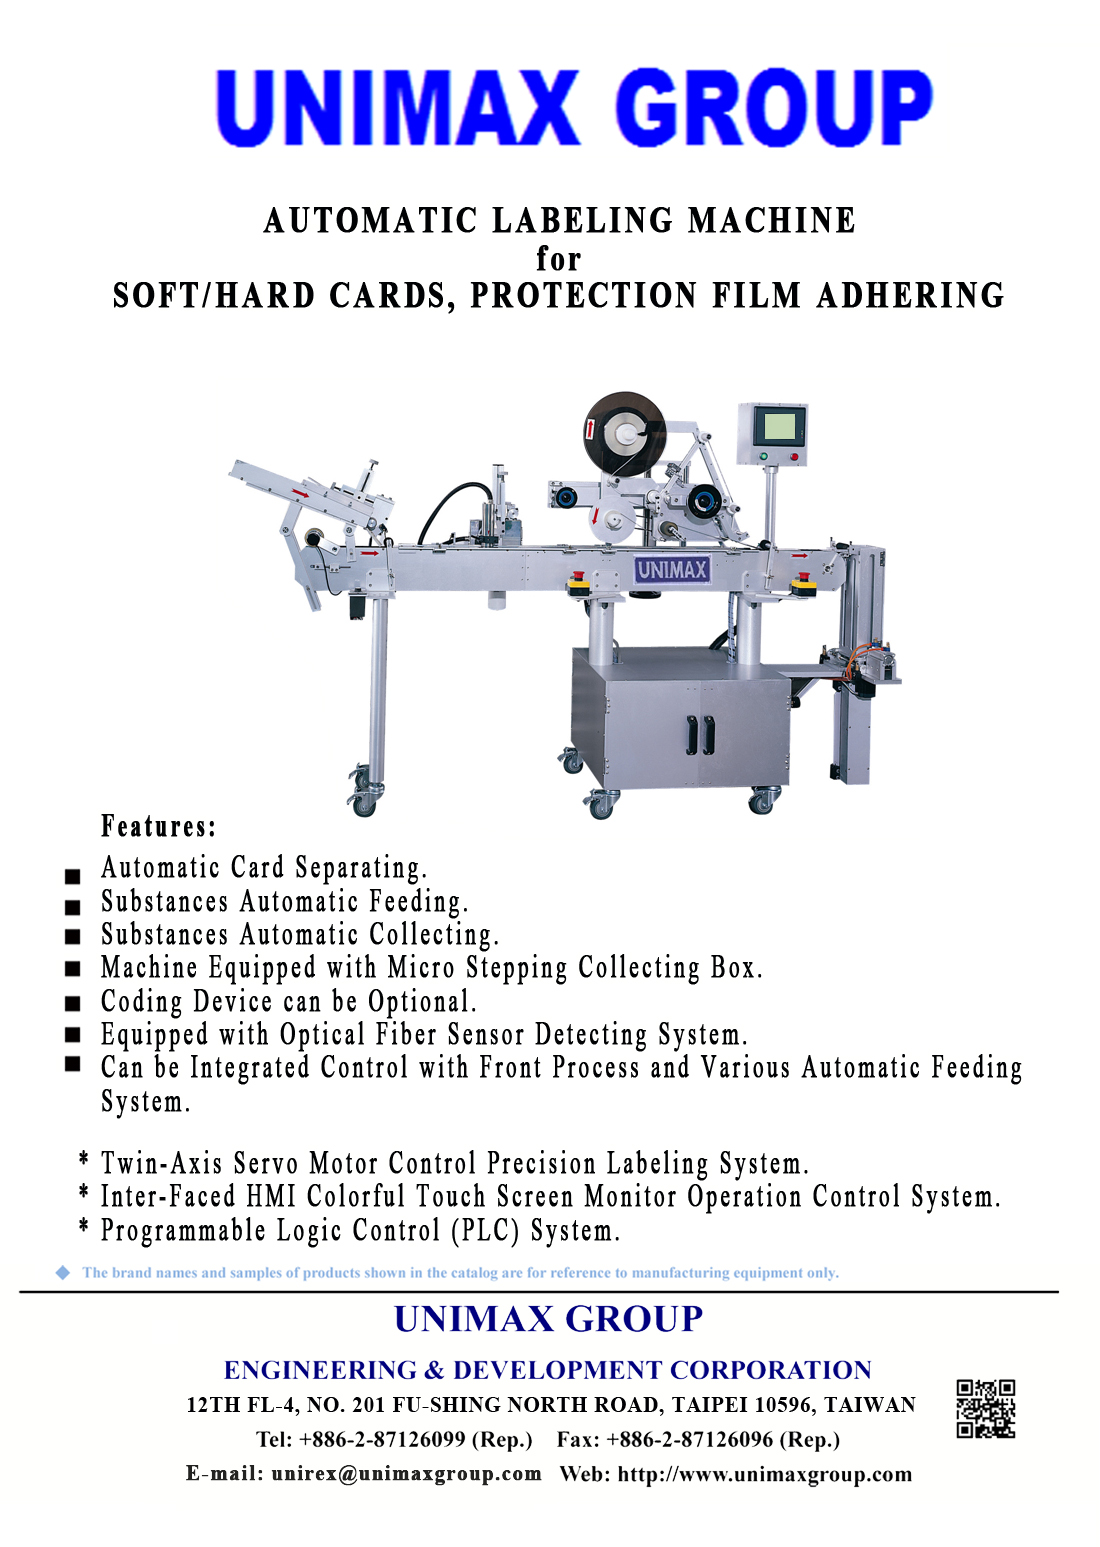 High-Tech Products Labeling / Protection Film Adhering Machine 310A Suitable for Soft and Hard Cards